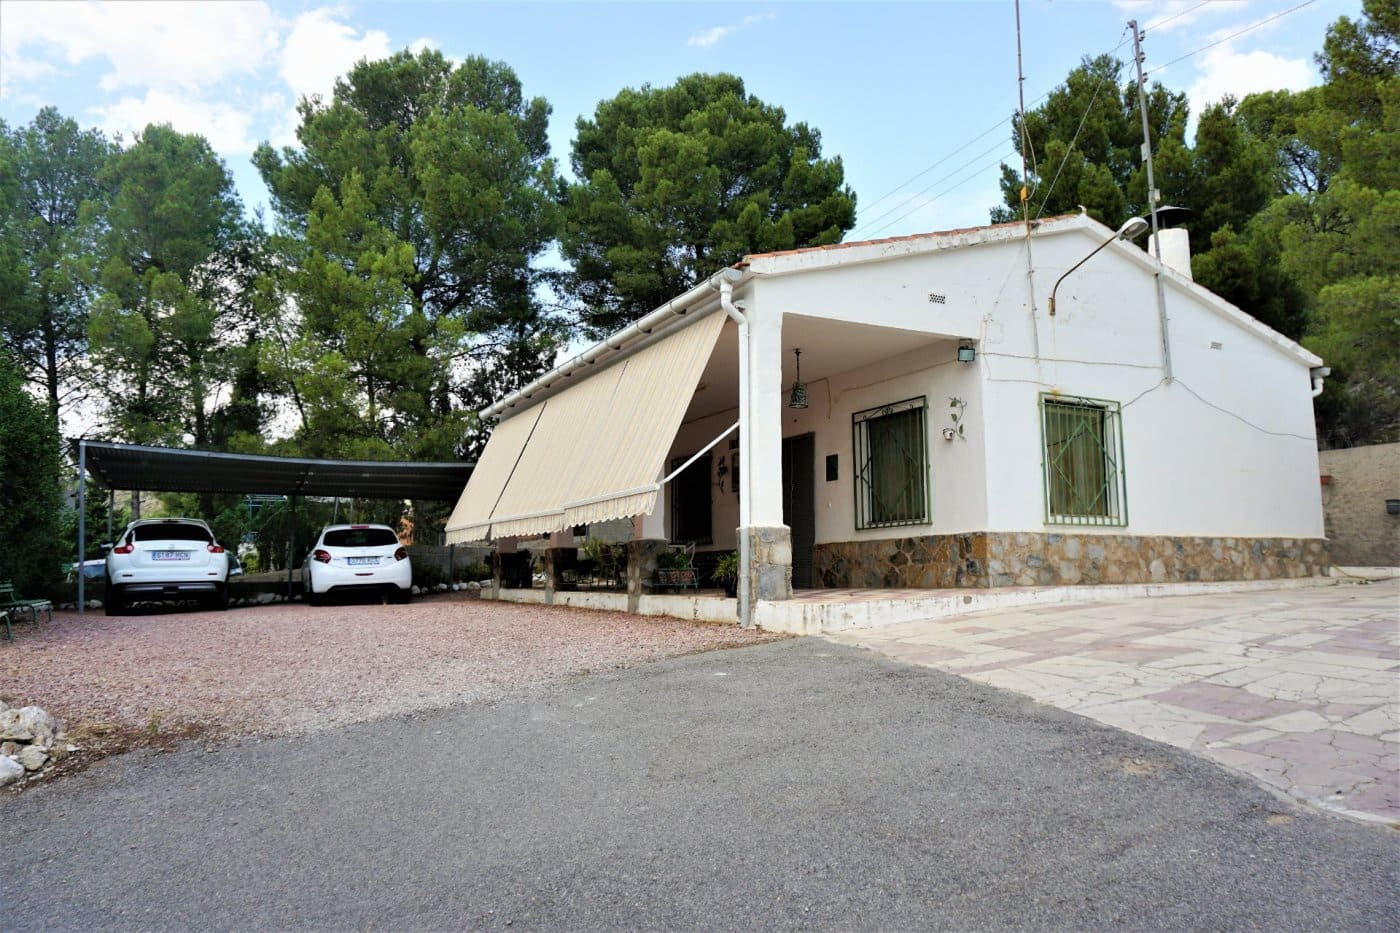 3 bedroom Finca/Country House for sale in Petrel / Petrer - € 108,995 (Ref: 5394166)